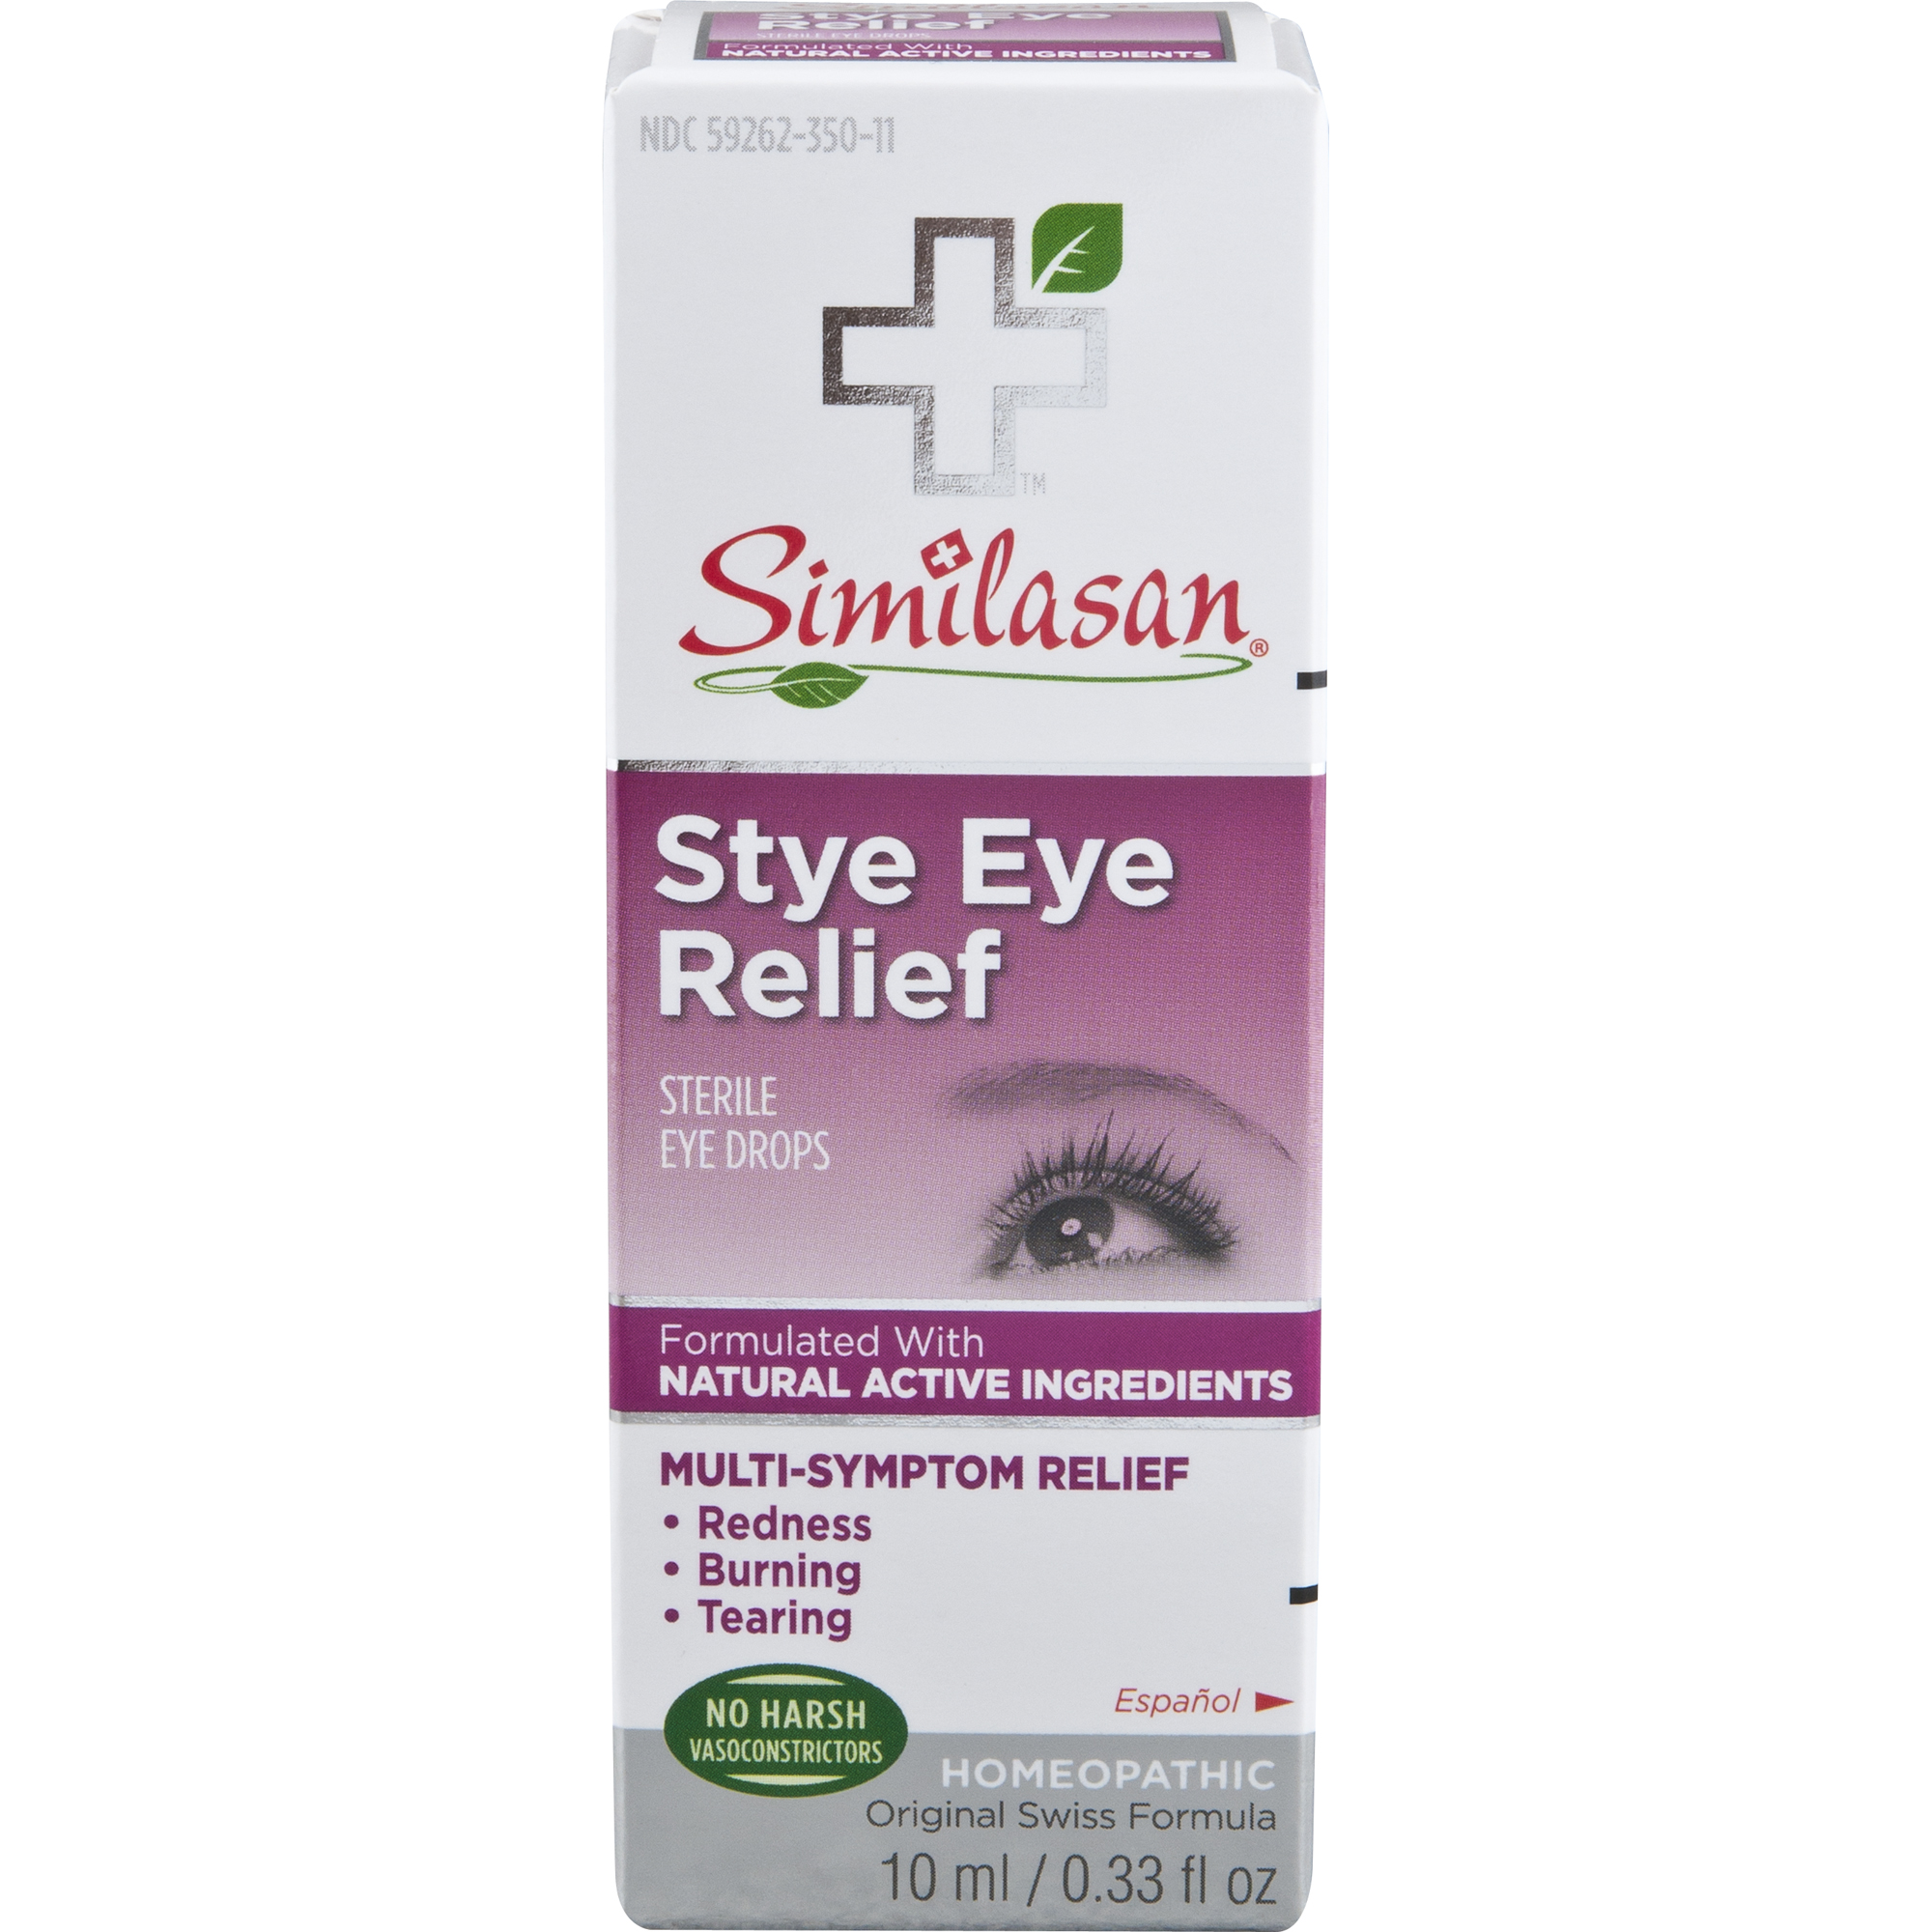 Similasan Stye Eye Relief .33 fl oz